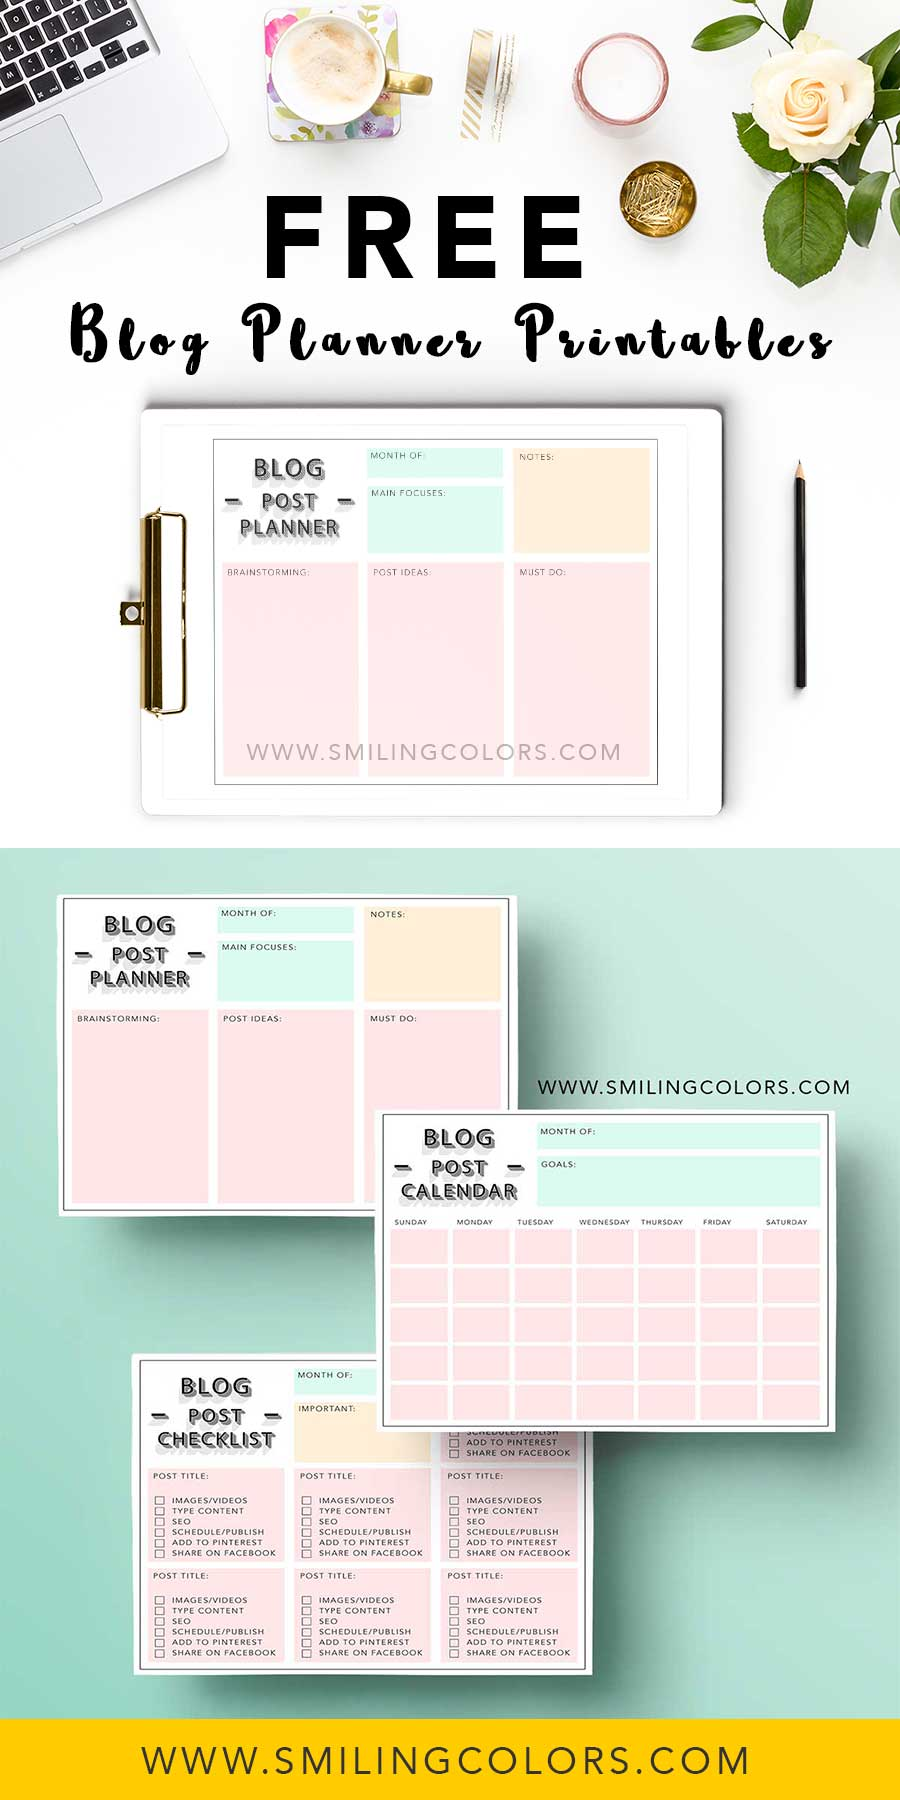 image regarding Blog Planner Printable titled Absolutely free web site planner printables in direction of support yourself receive well prepared